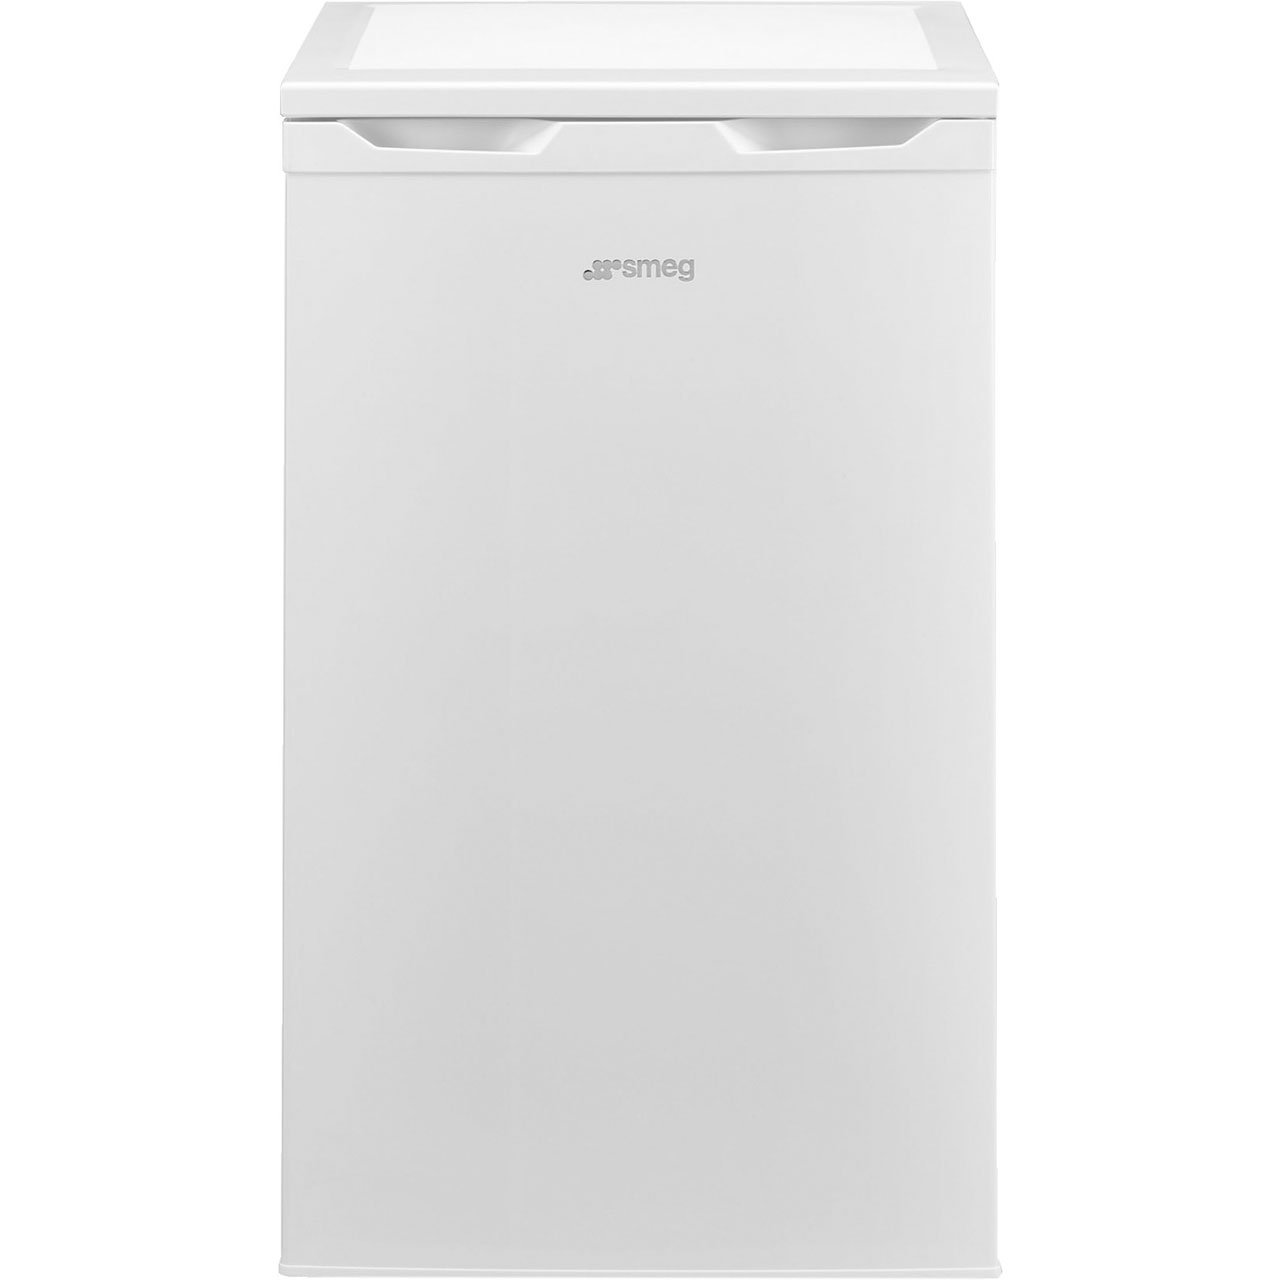 Smeg CV100AP Freestanding A+ Rated Freezer in White